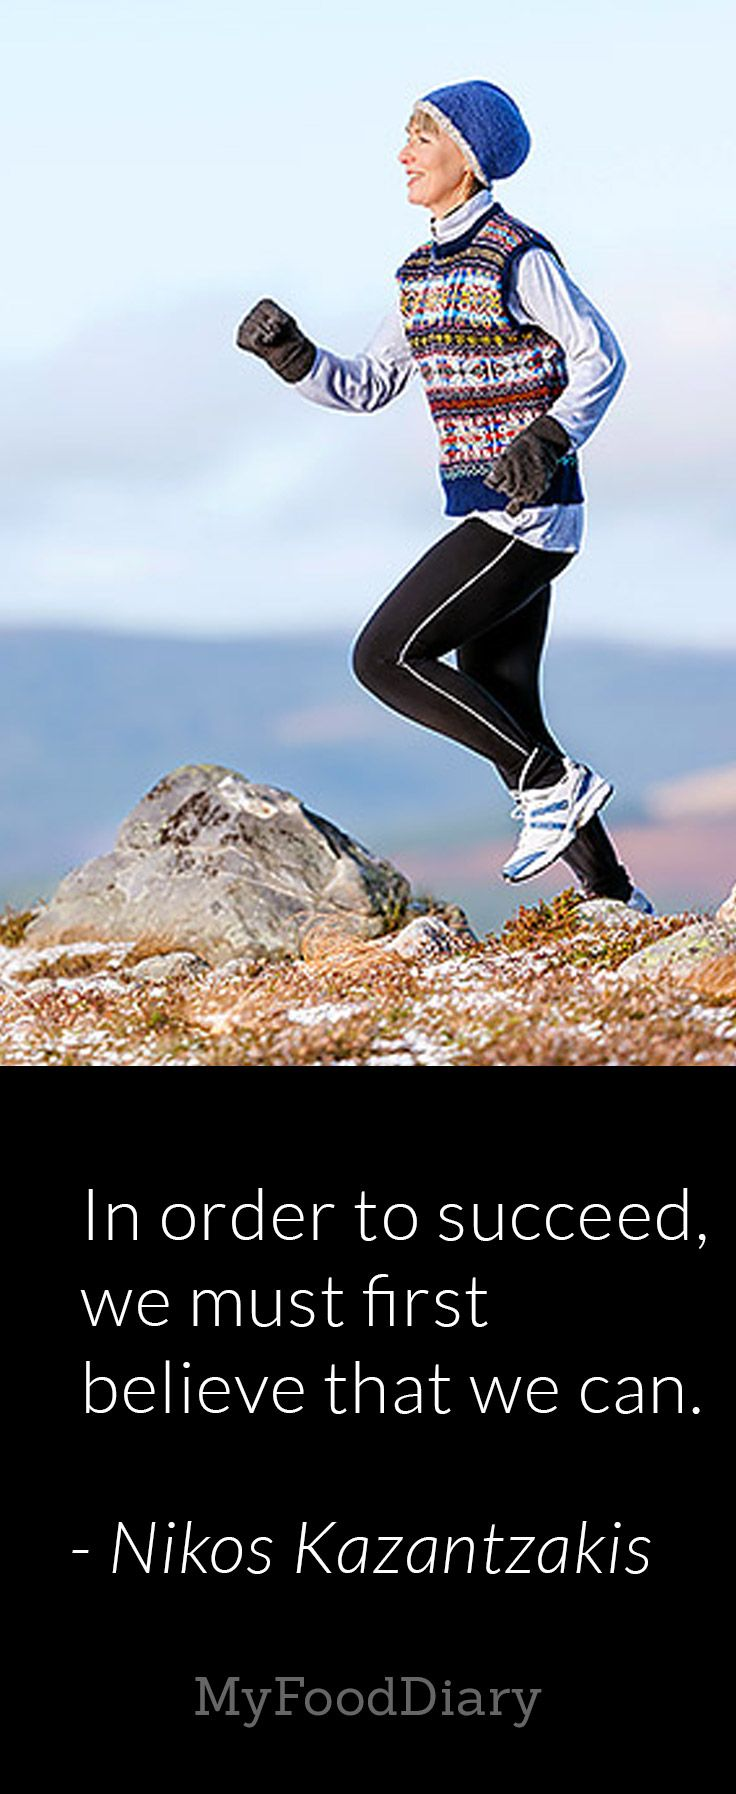 In order to succeed, we must first believe that we can. -- Nikos Kazantzakis